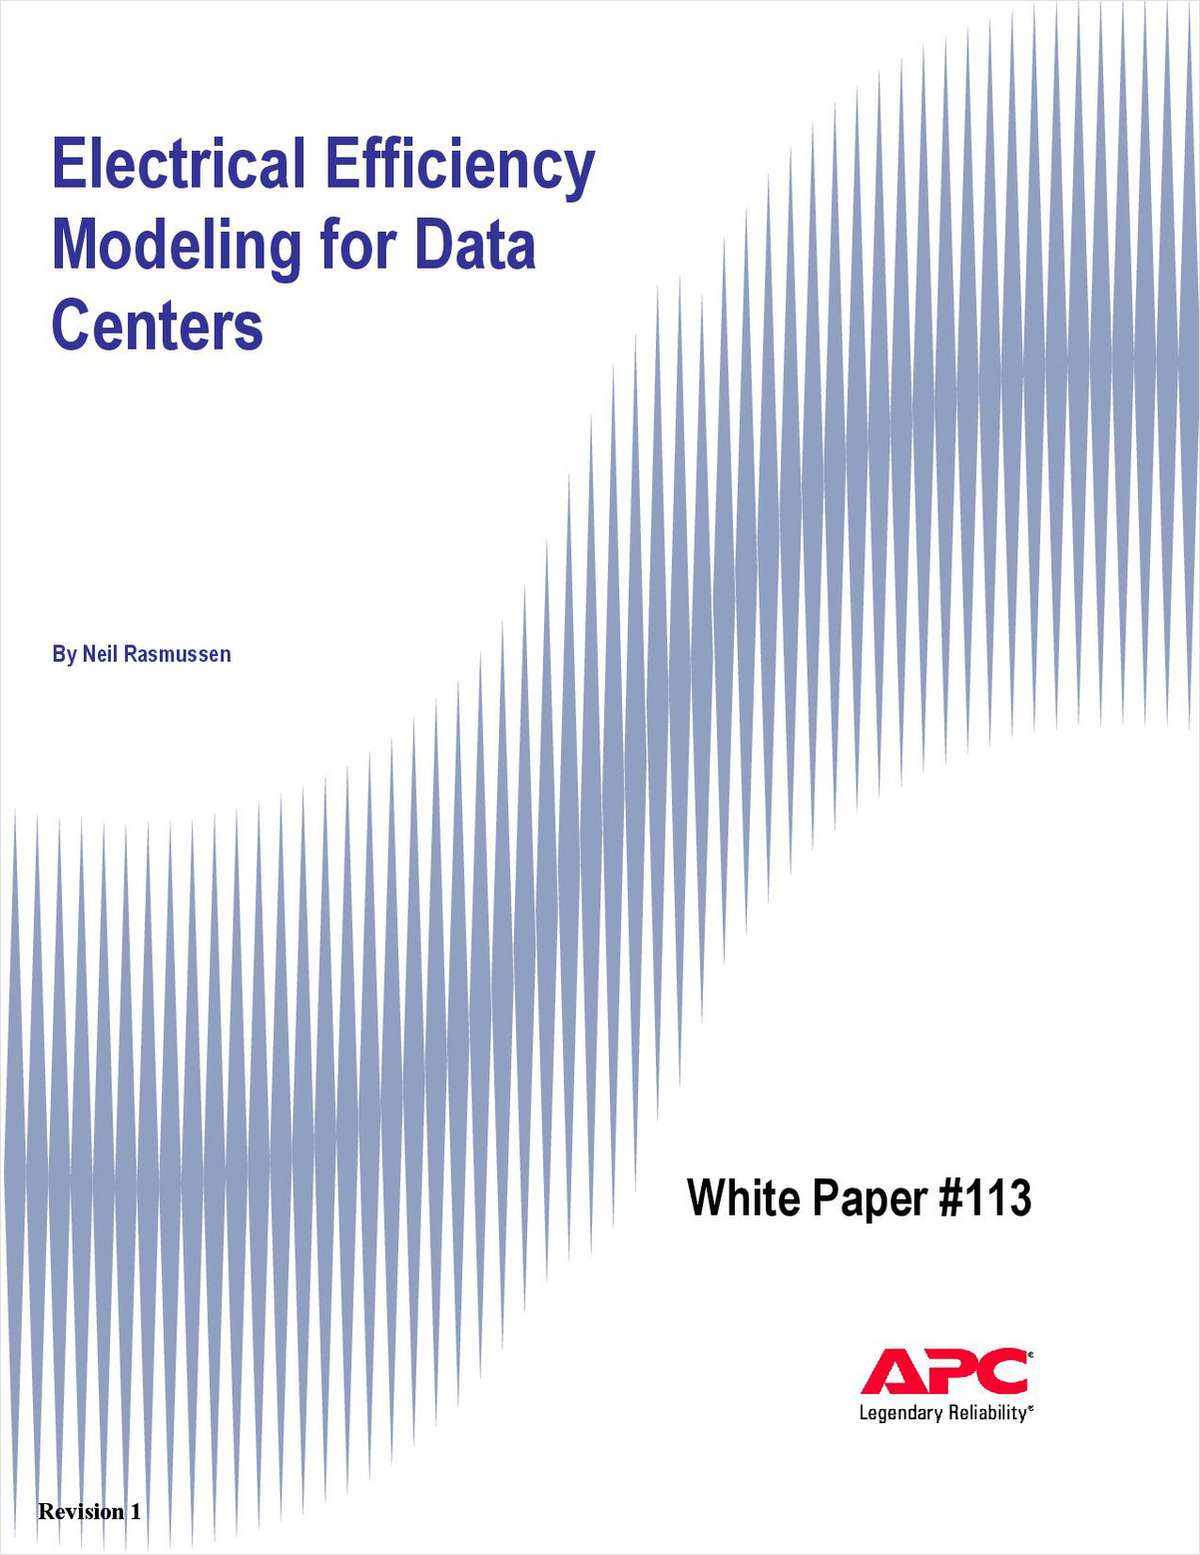 Electrical Efficiency Modeling for Data Centers